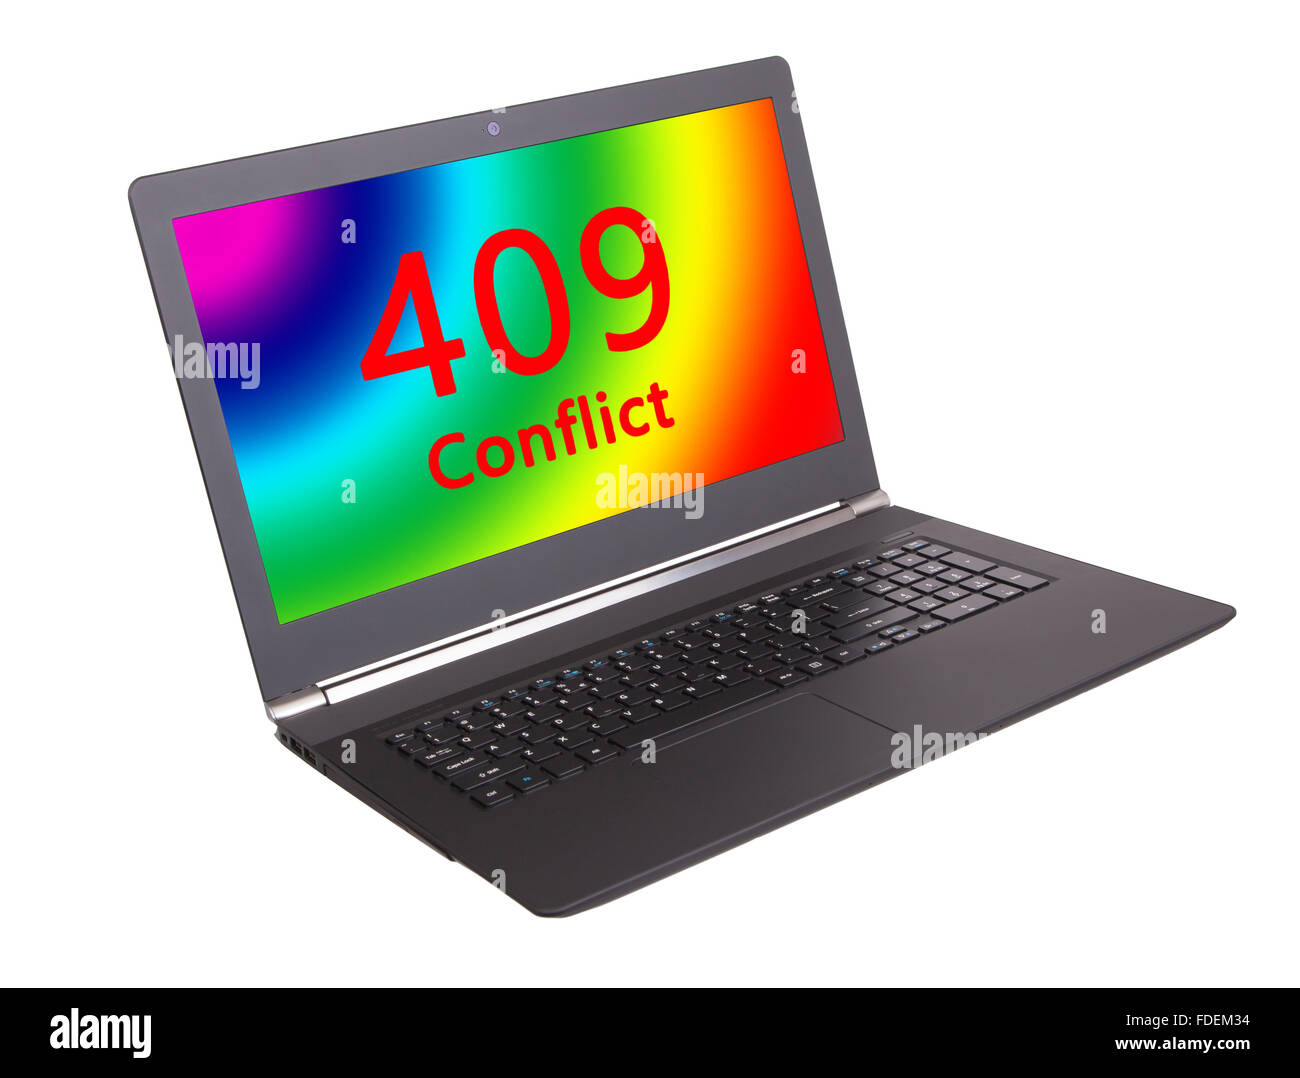 HTTP Status code on a laptop screen - 409, Conflict Stock Photo